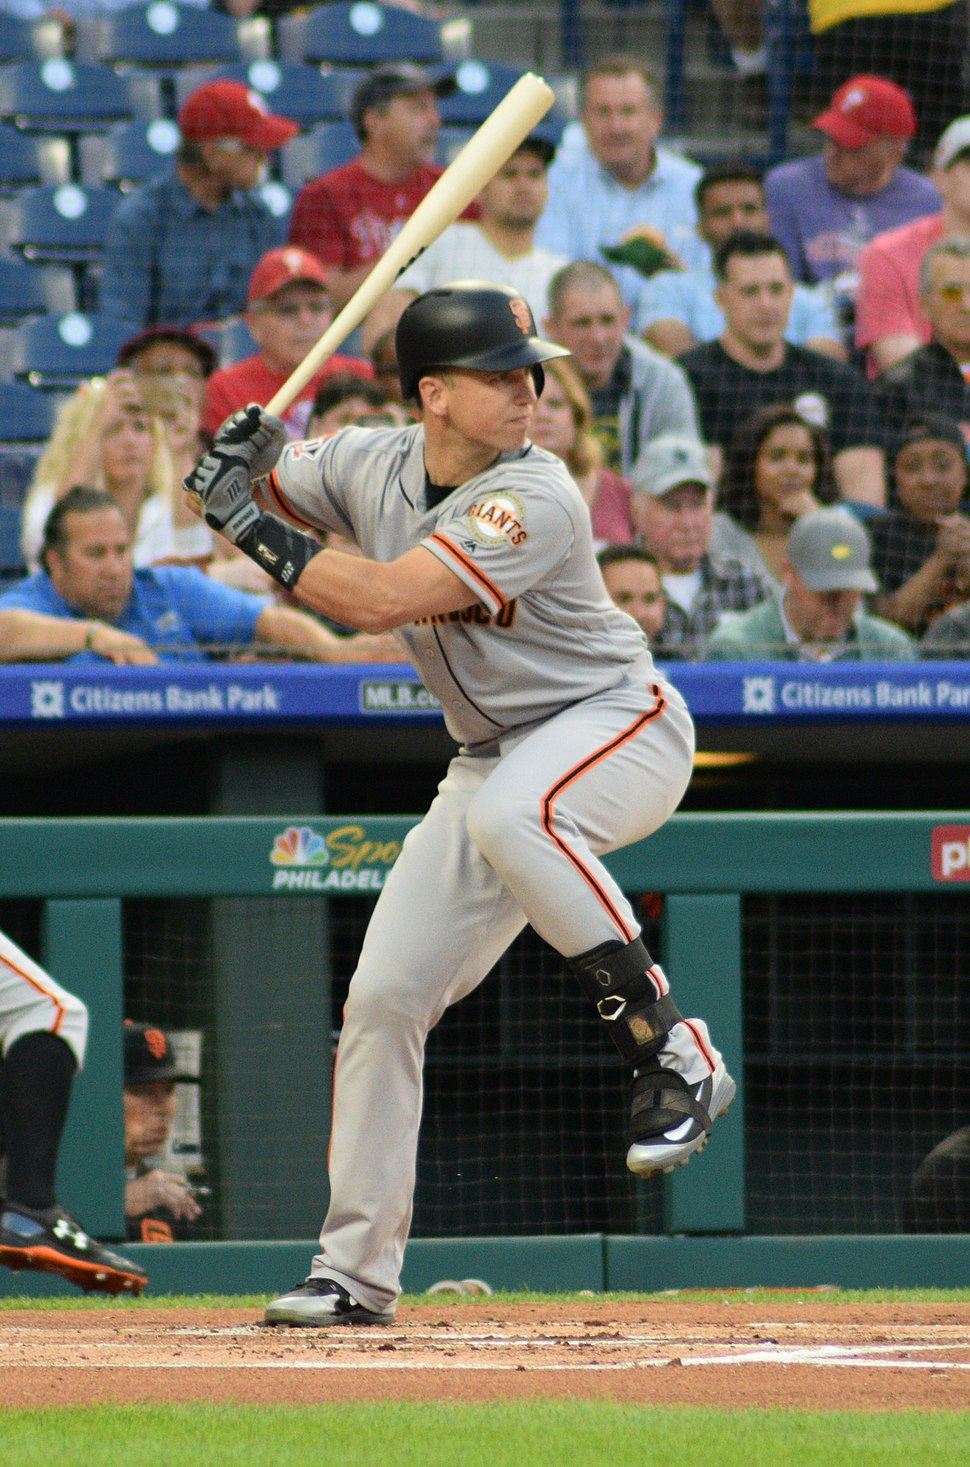 Buster Posey in 2018 (cropped)